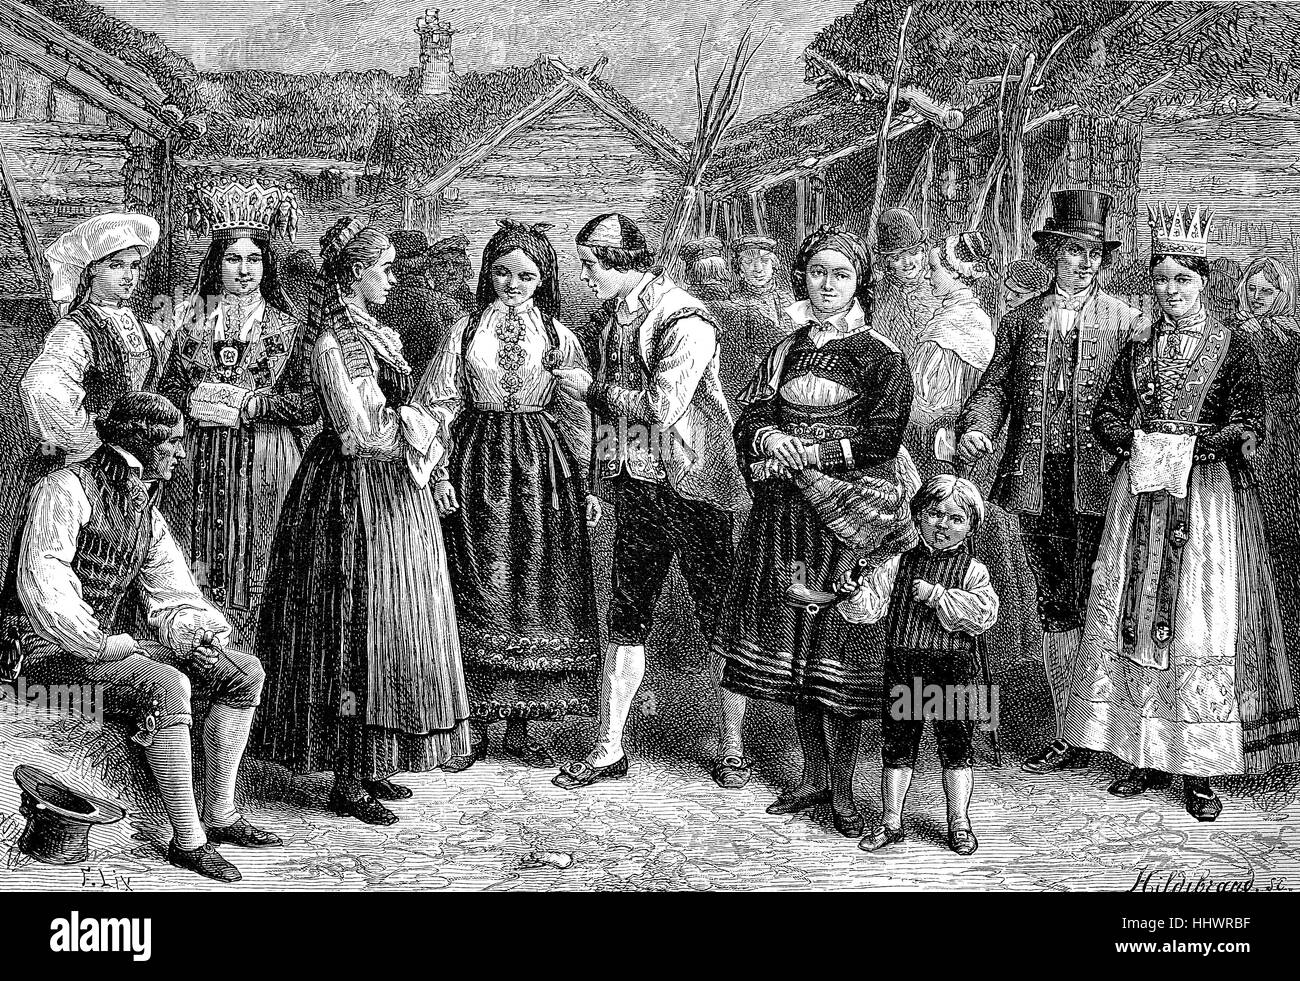 A group in Norwegian folk costumes, Norway, historical image or illustration, published 1890, digital improved - Stock Image